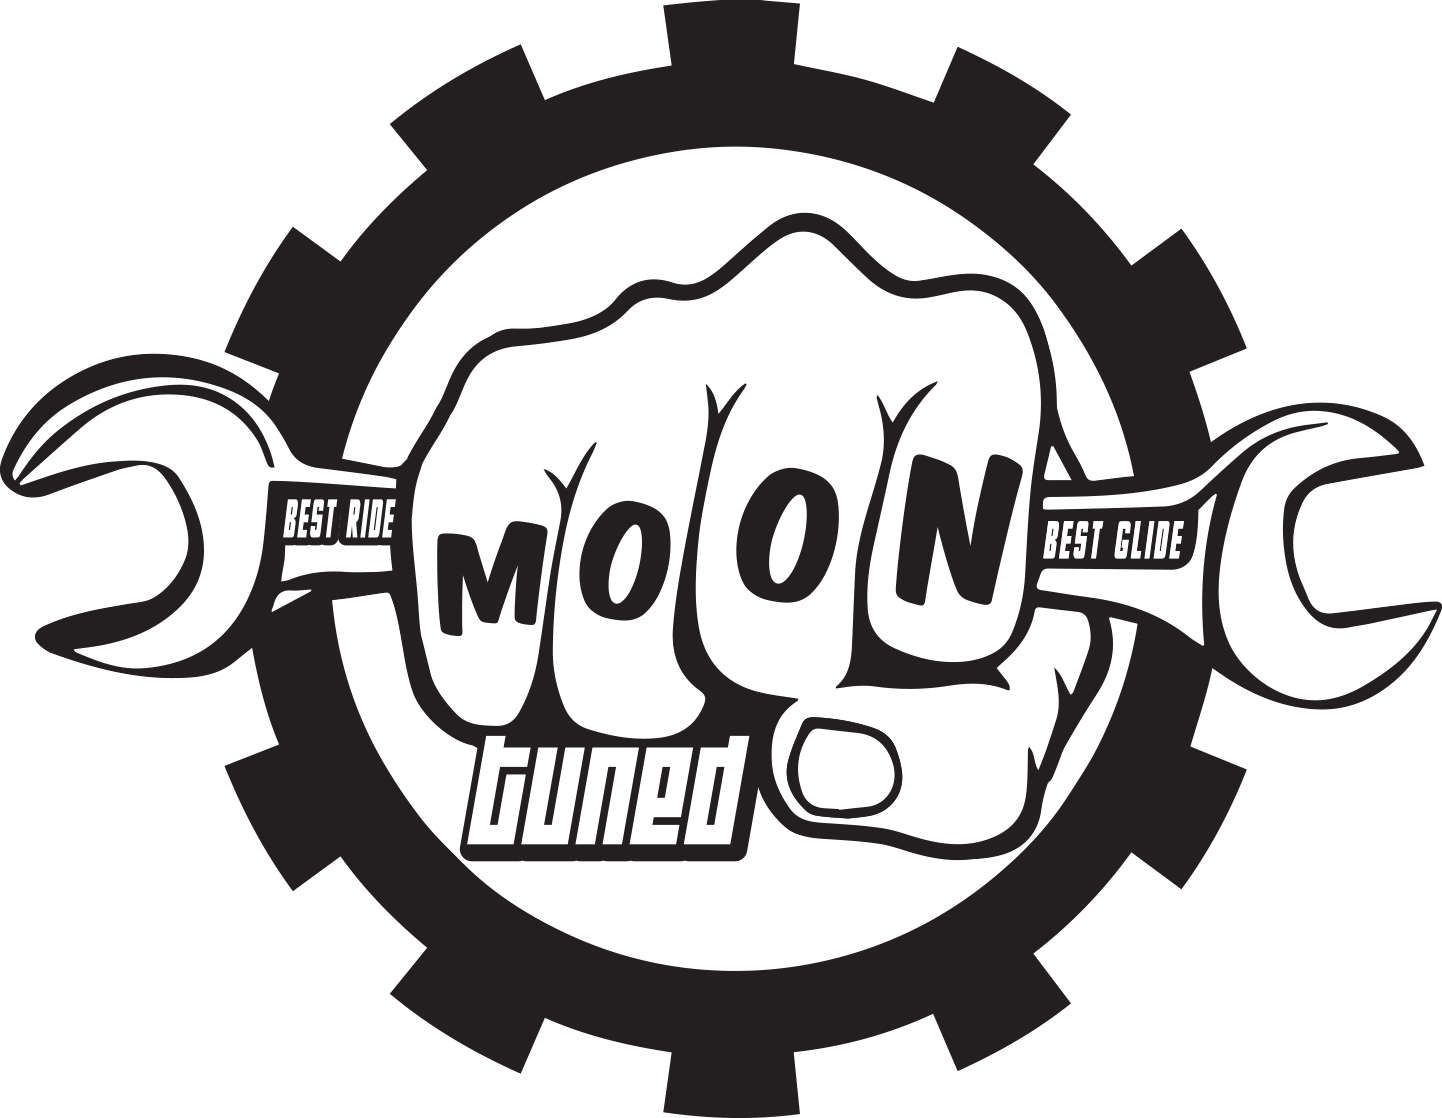 Moon Tuned - Bicycle Service & Repair - Brainerd